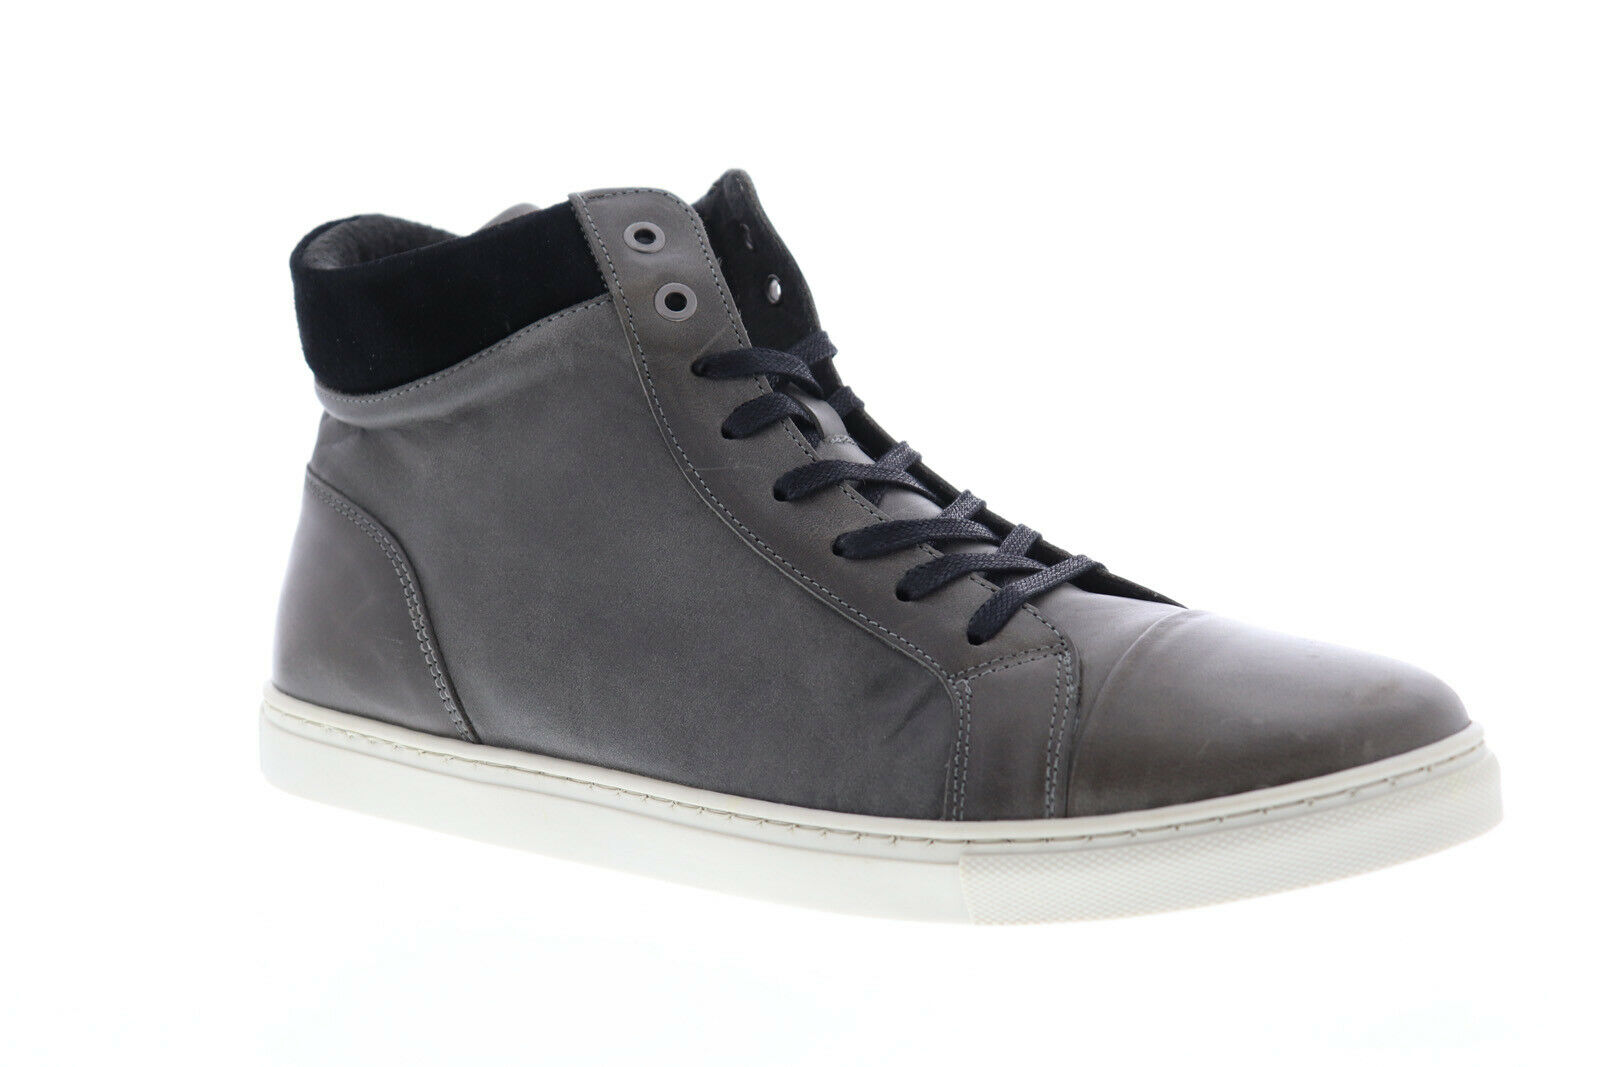 Robert Wayne Tf Damond RWF1311M Mens Gray Casual Lace Up Fashion Sneakers Shoes